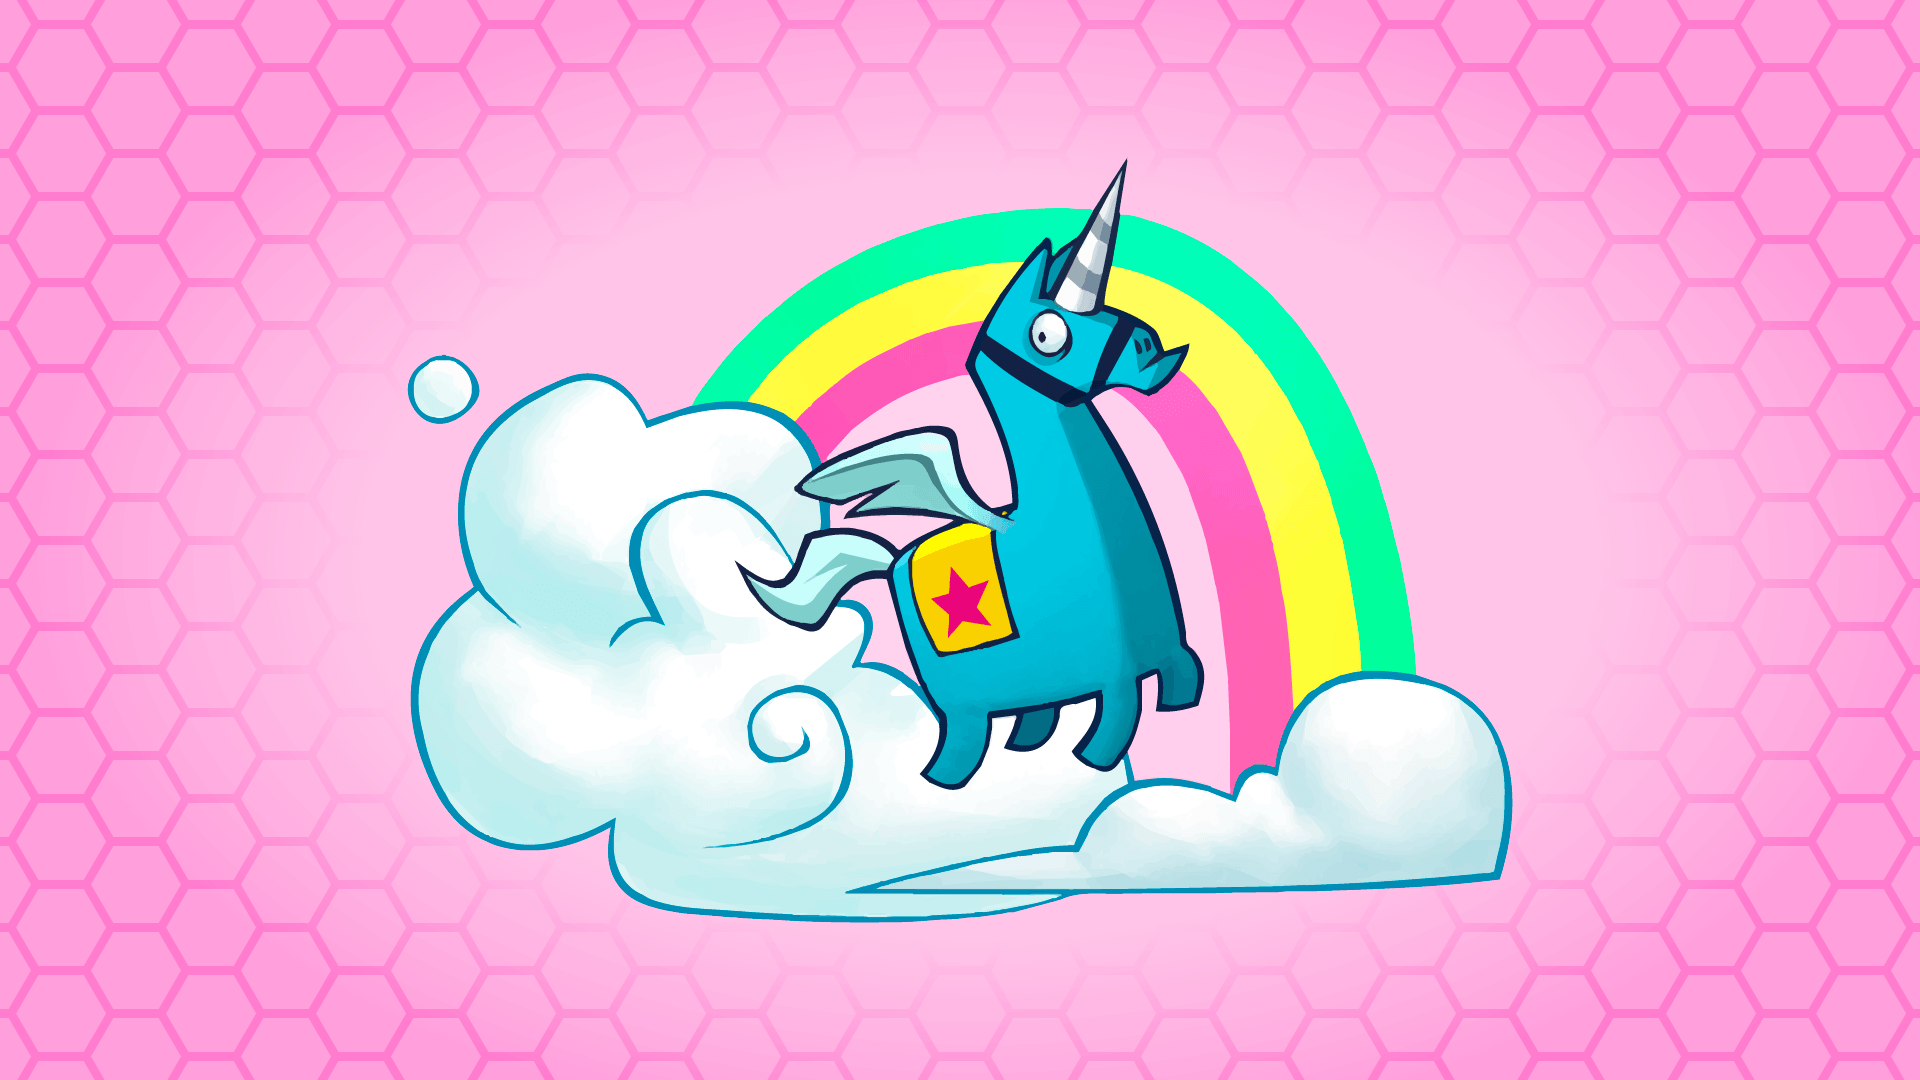 Brite Unicorn Wallpaper, HD y limpio: FortNiteBR